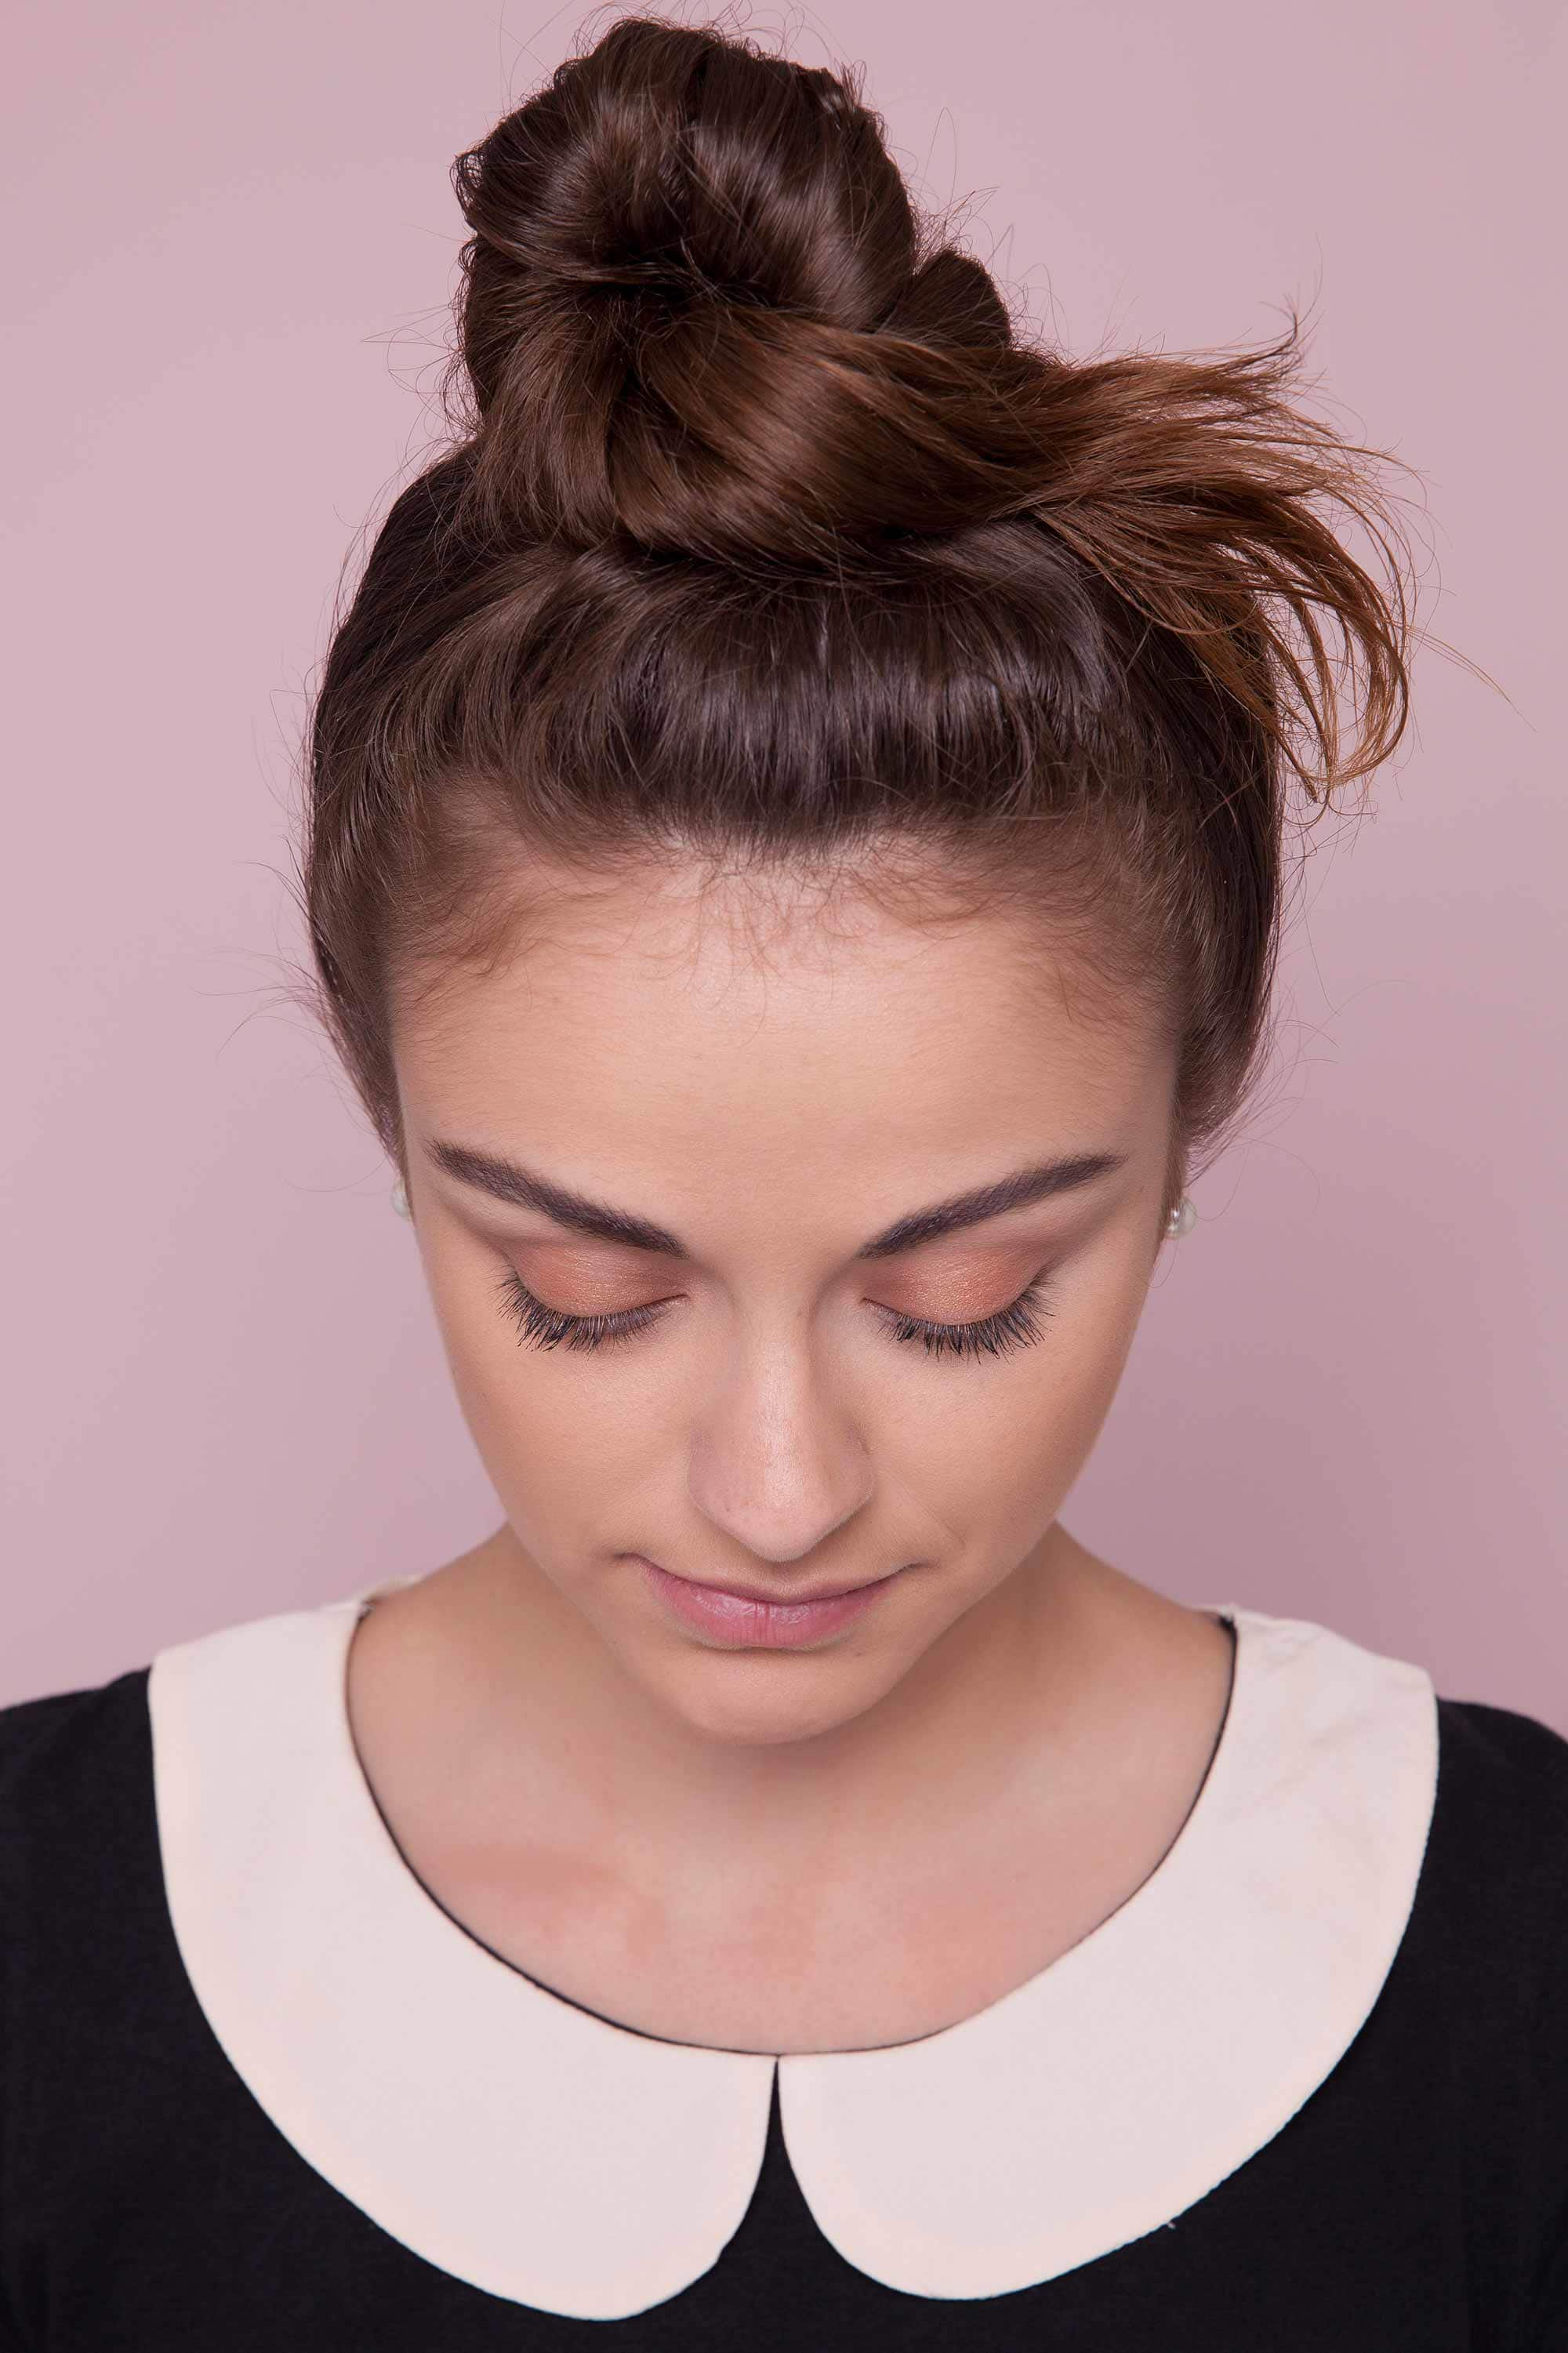 a top knotted hair woman on a pink background